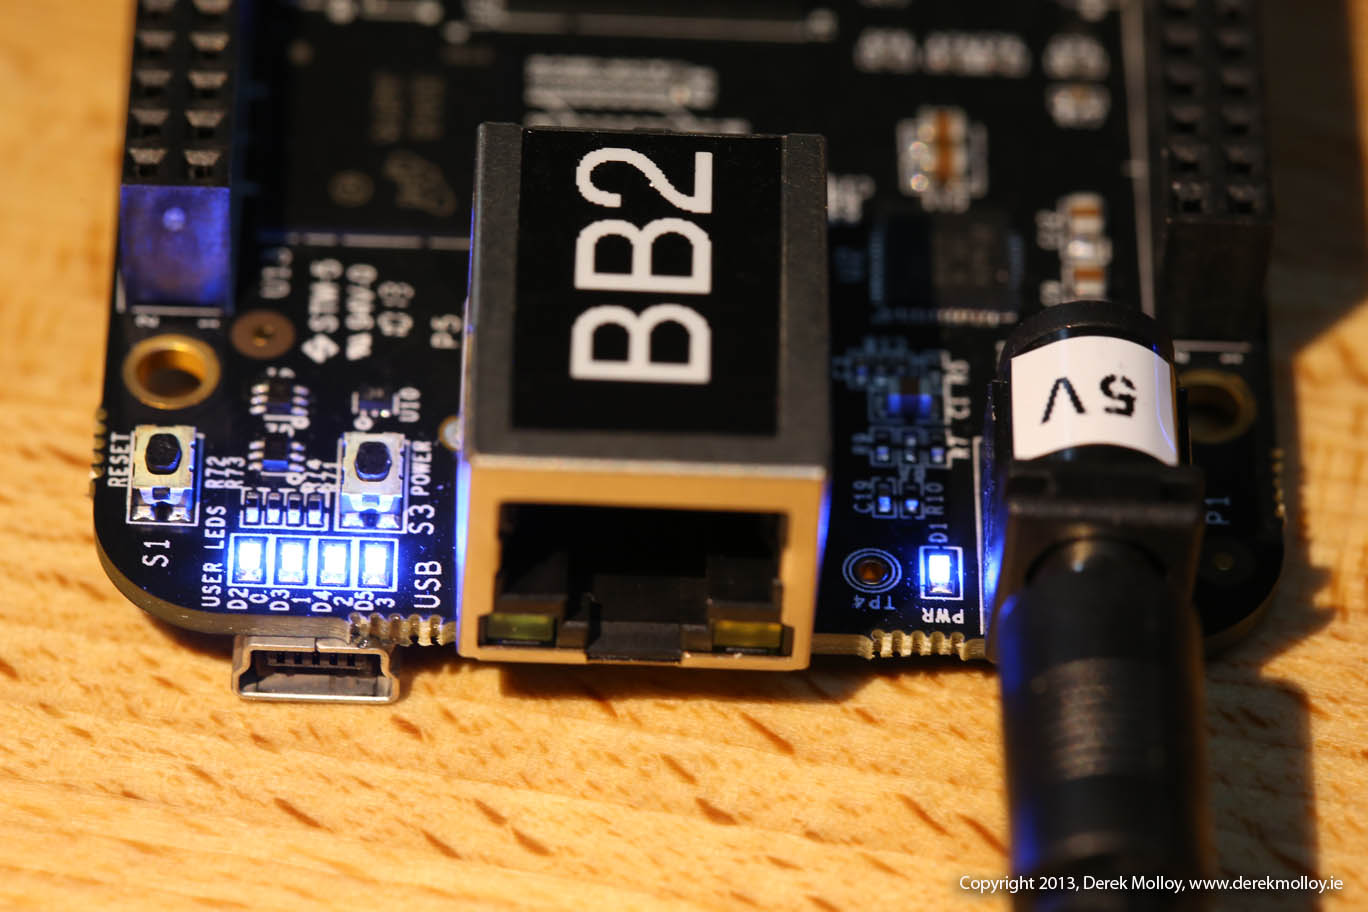 Writing a new Image to the Beaglebone Black | derekmolloy ie